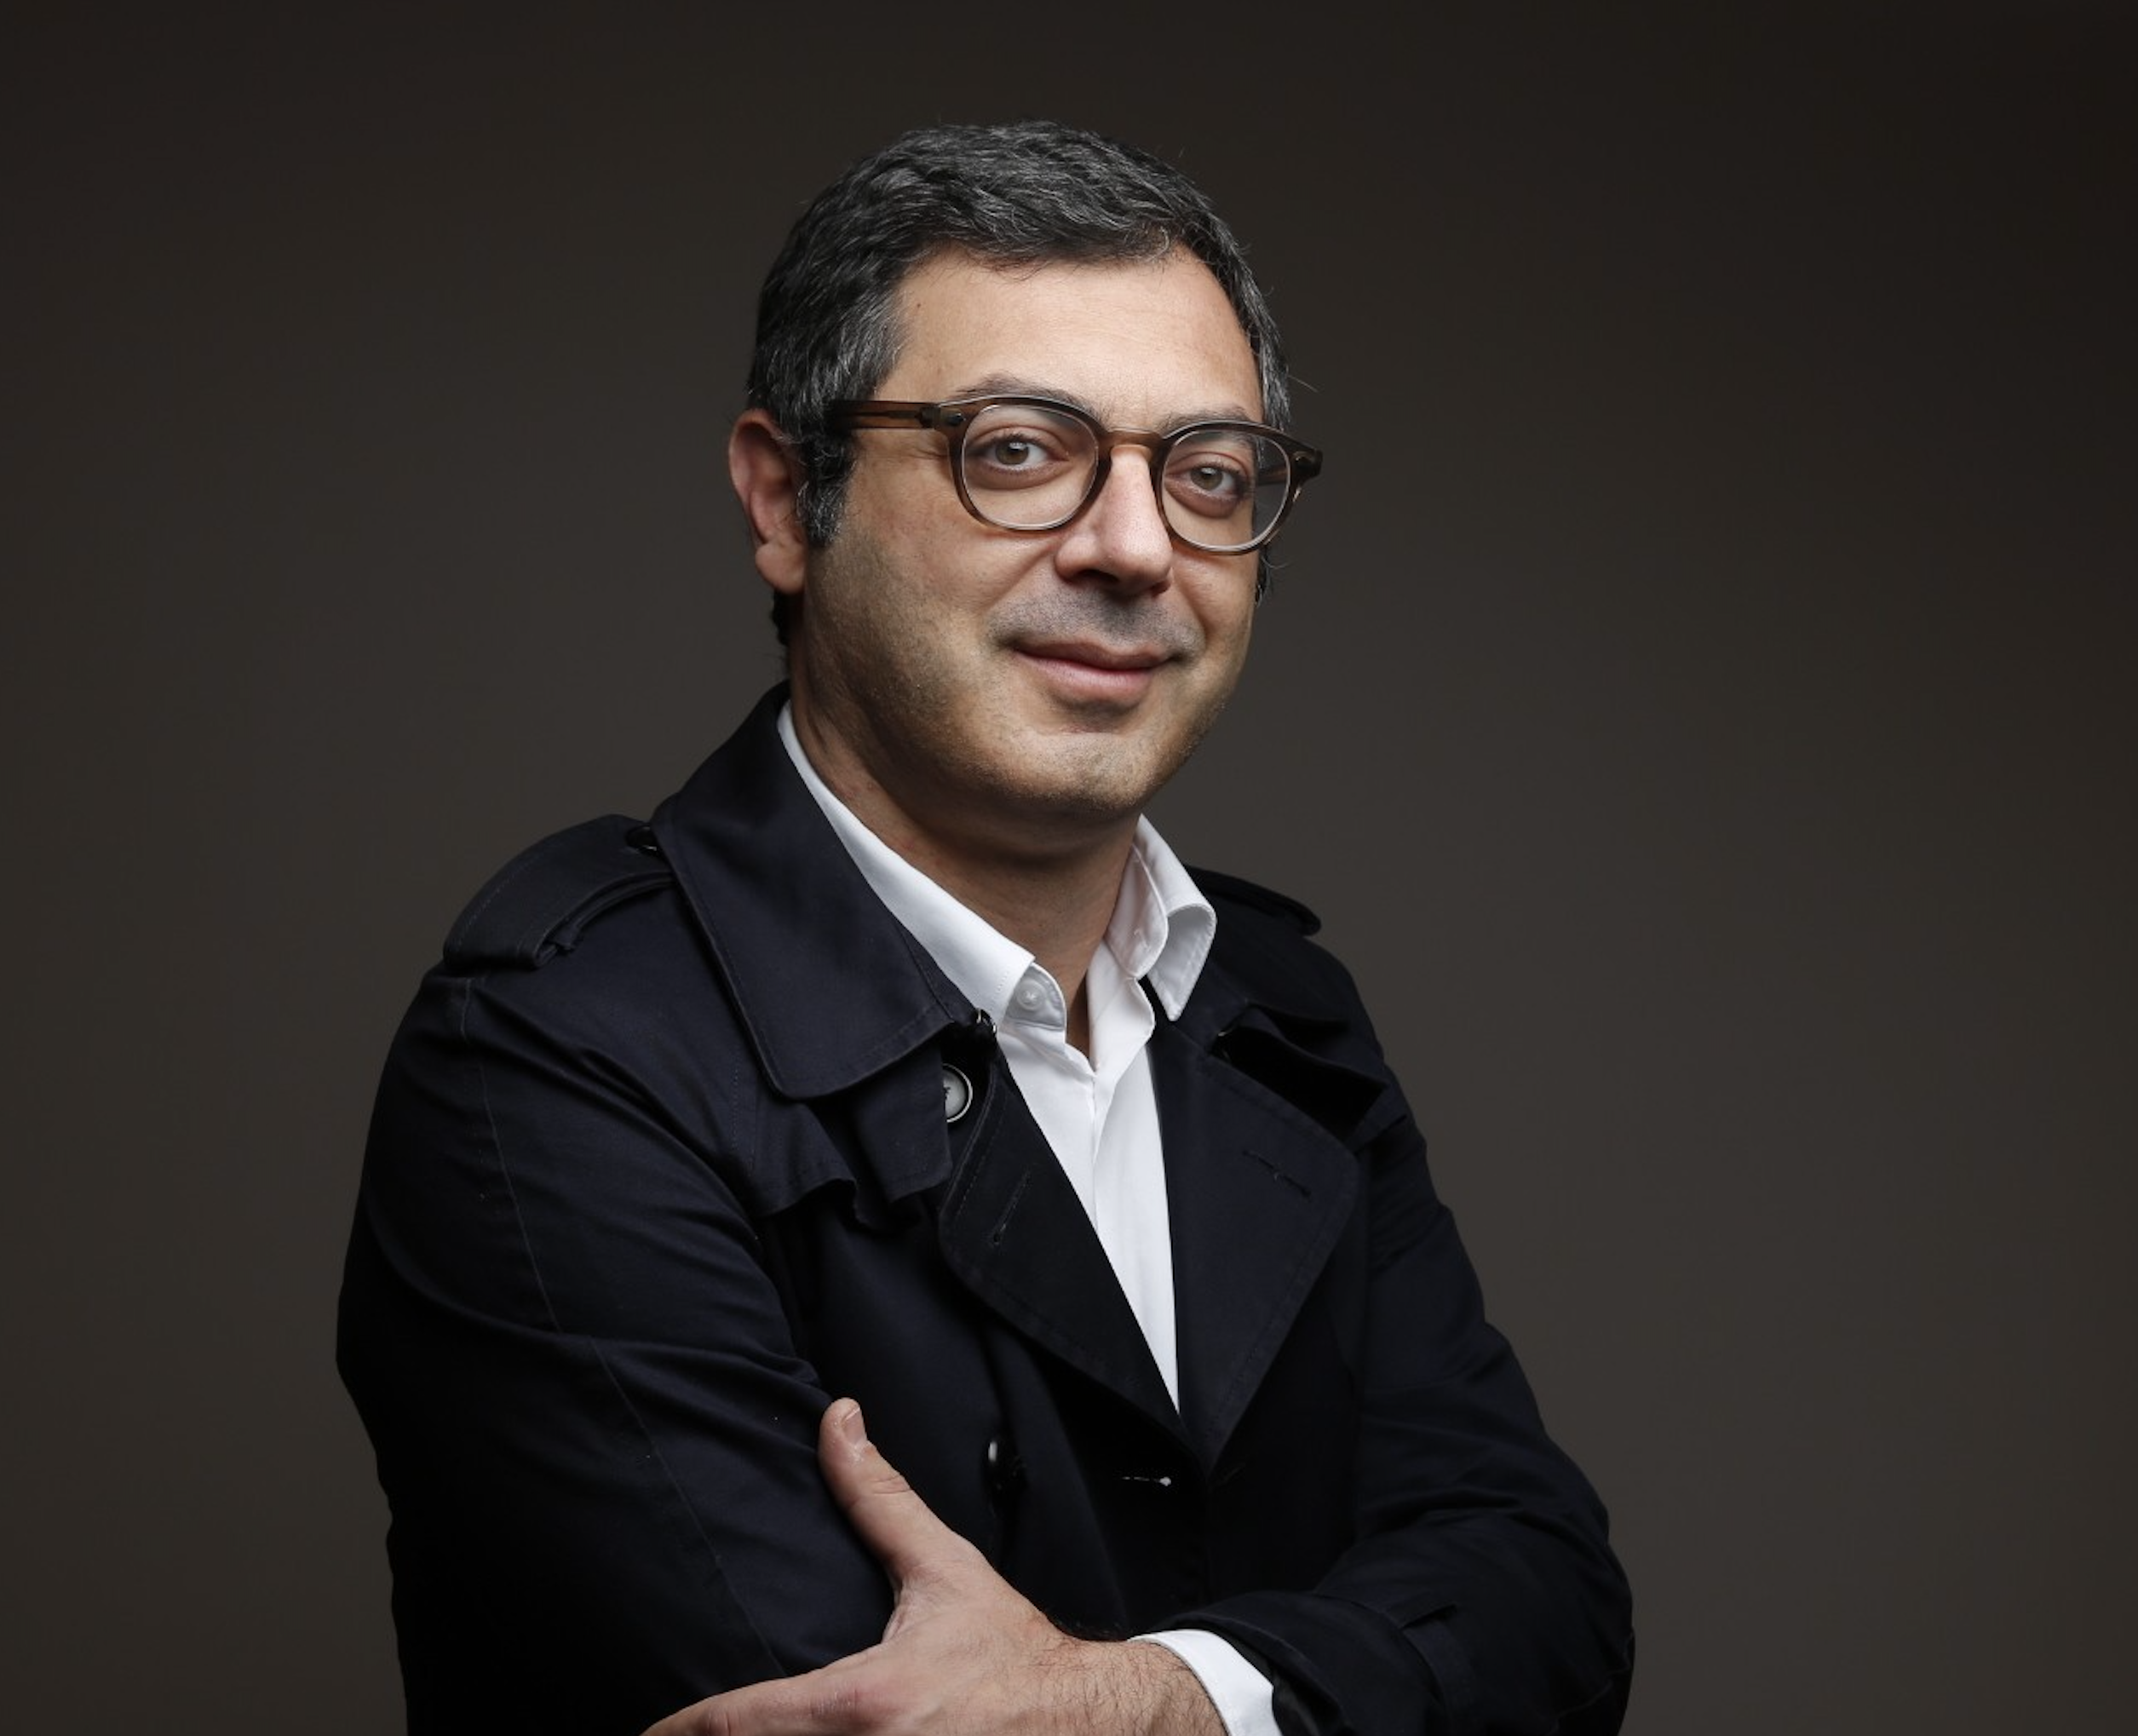 Cyril Chiche, cofounder of Lydia